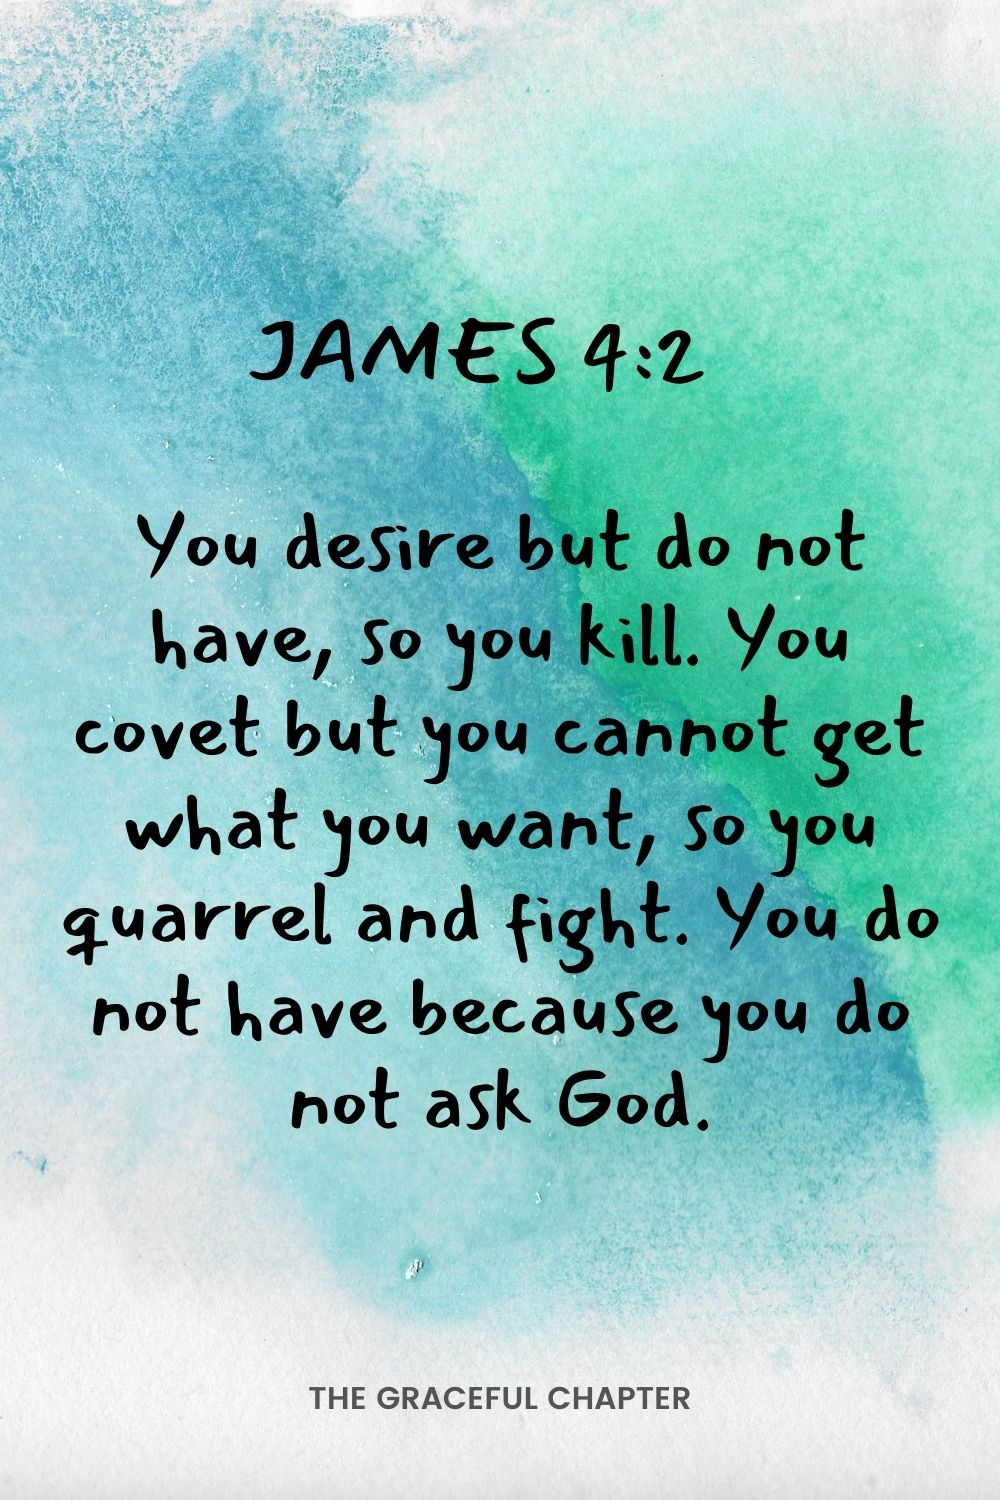 You desire but do not have, so you kill. You covet but you cannot get what you want, so you quarrel and fight. You do not have because you do not ask God. James 4:2